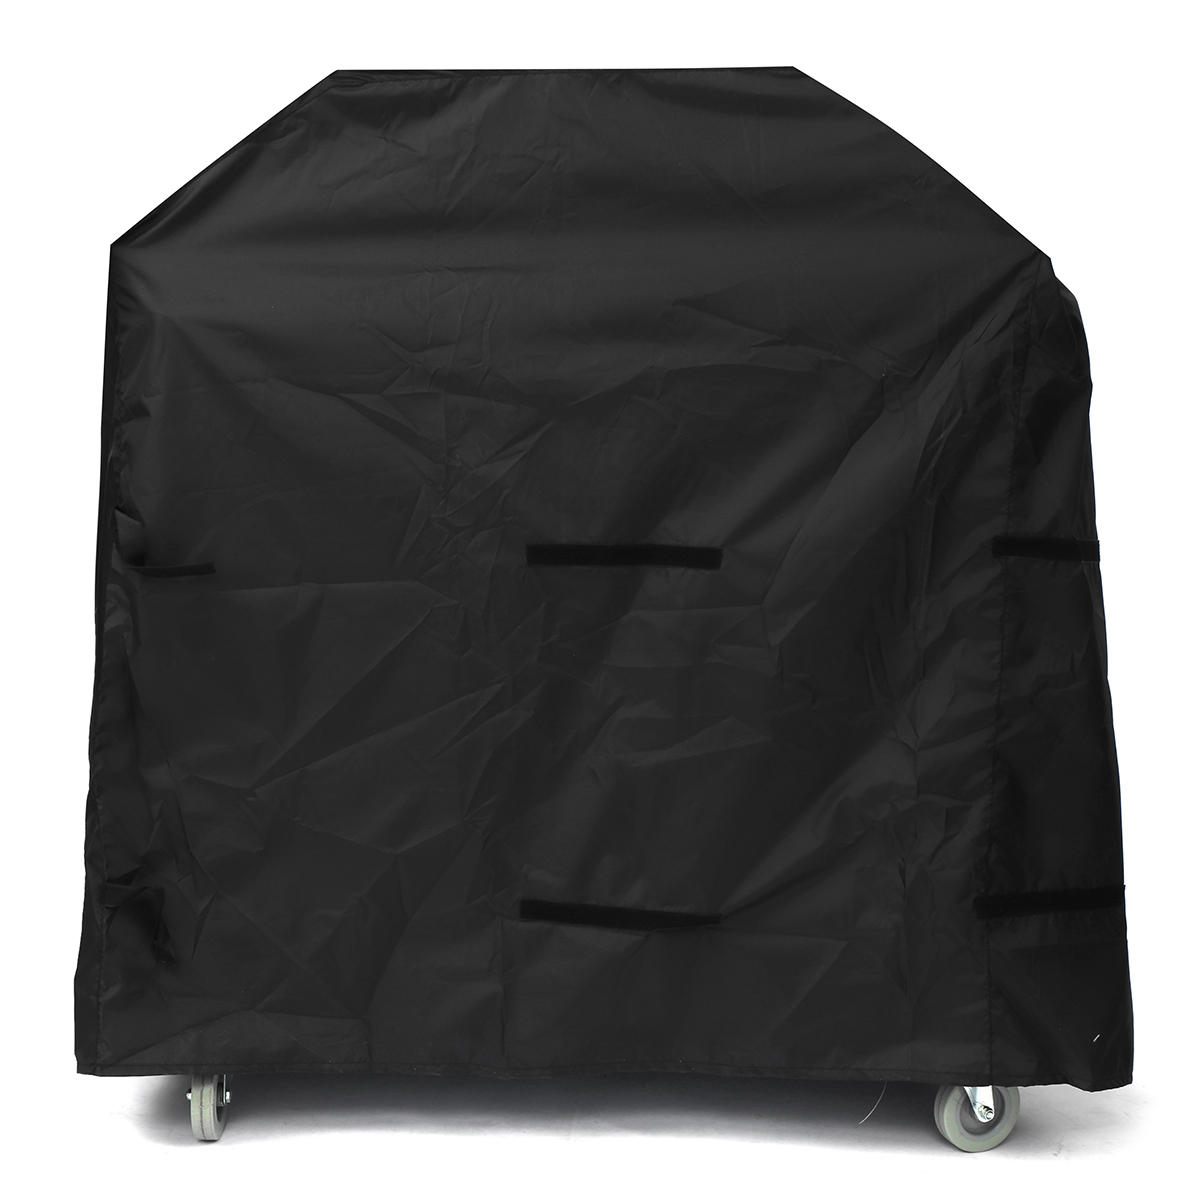 94x66x102cm Outdoor Waterproof Cover UV Dust Rain Protector For Char-Broil Patio Bistro